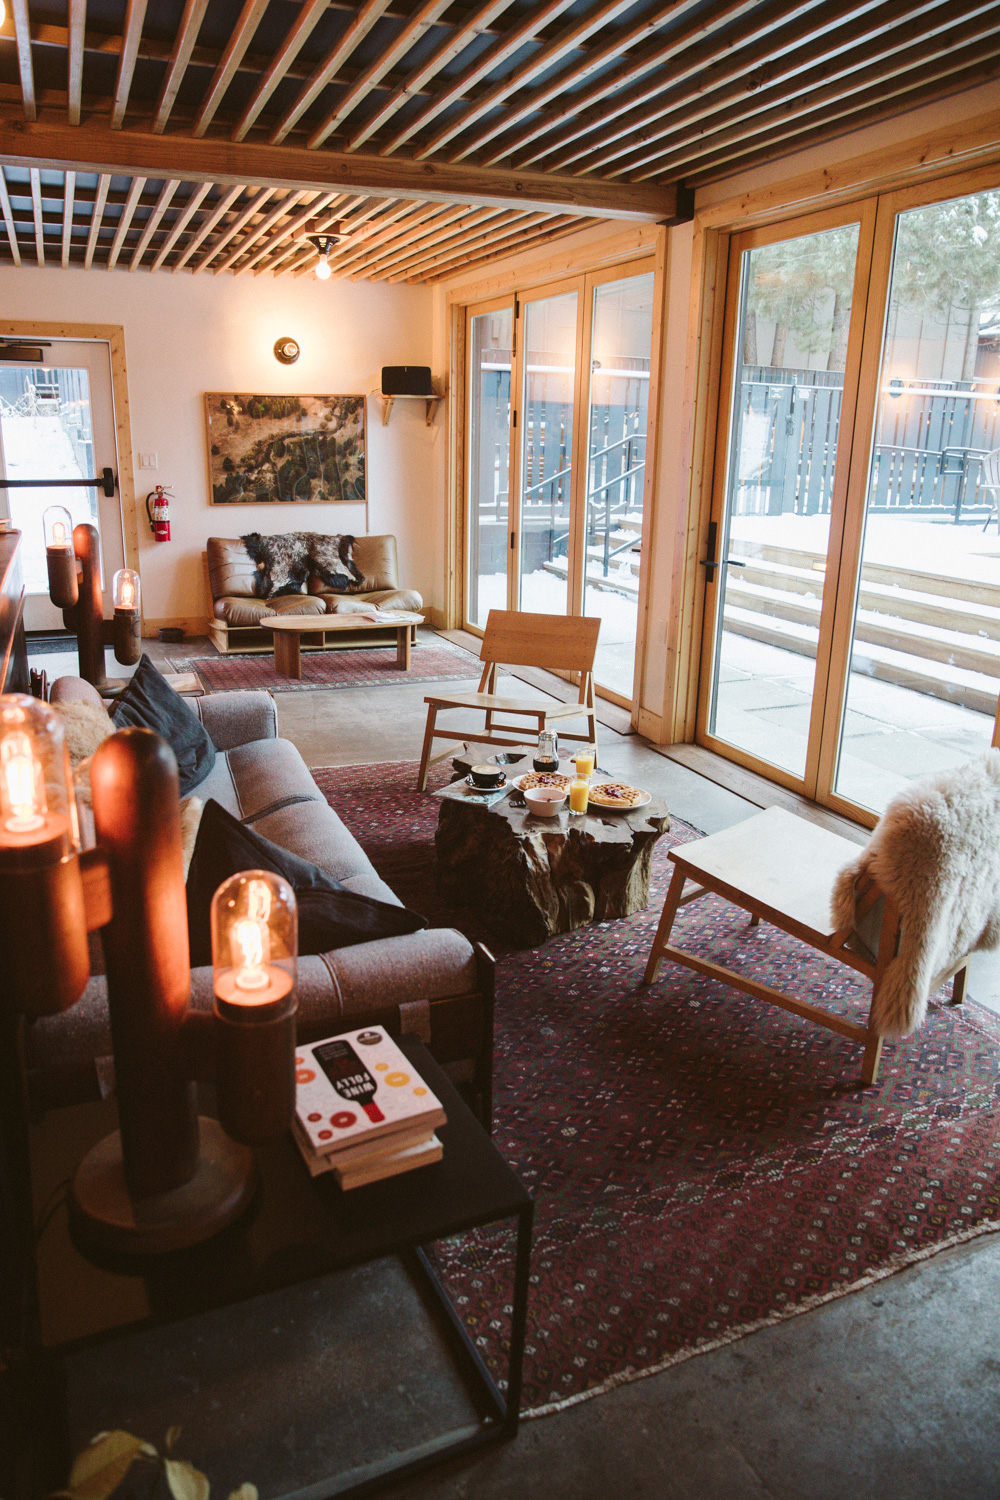 Where to Stay in South Lake Tahoe - Coachman Hotel - by Madeline Lu